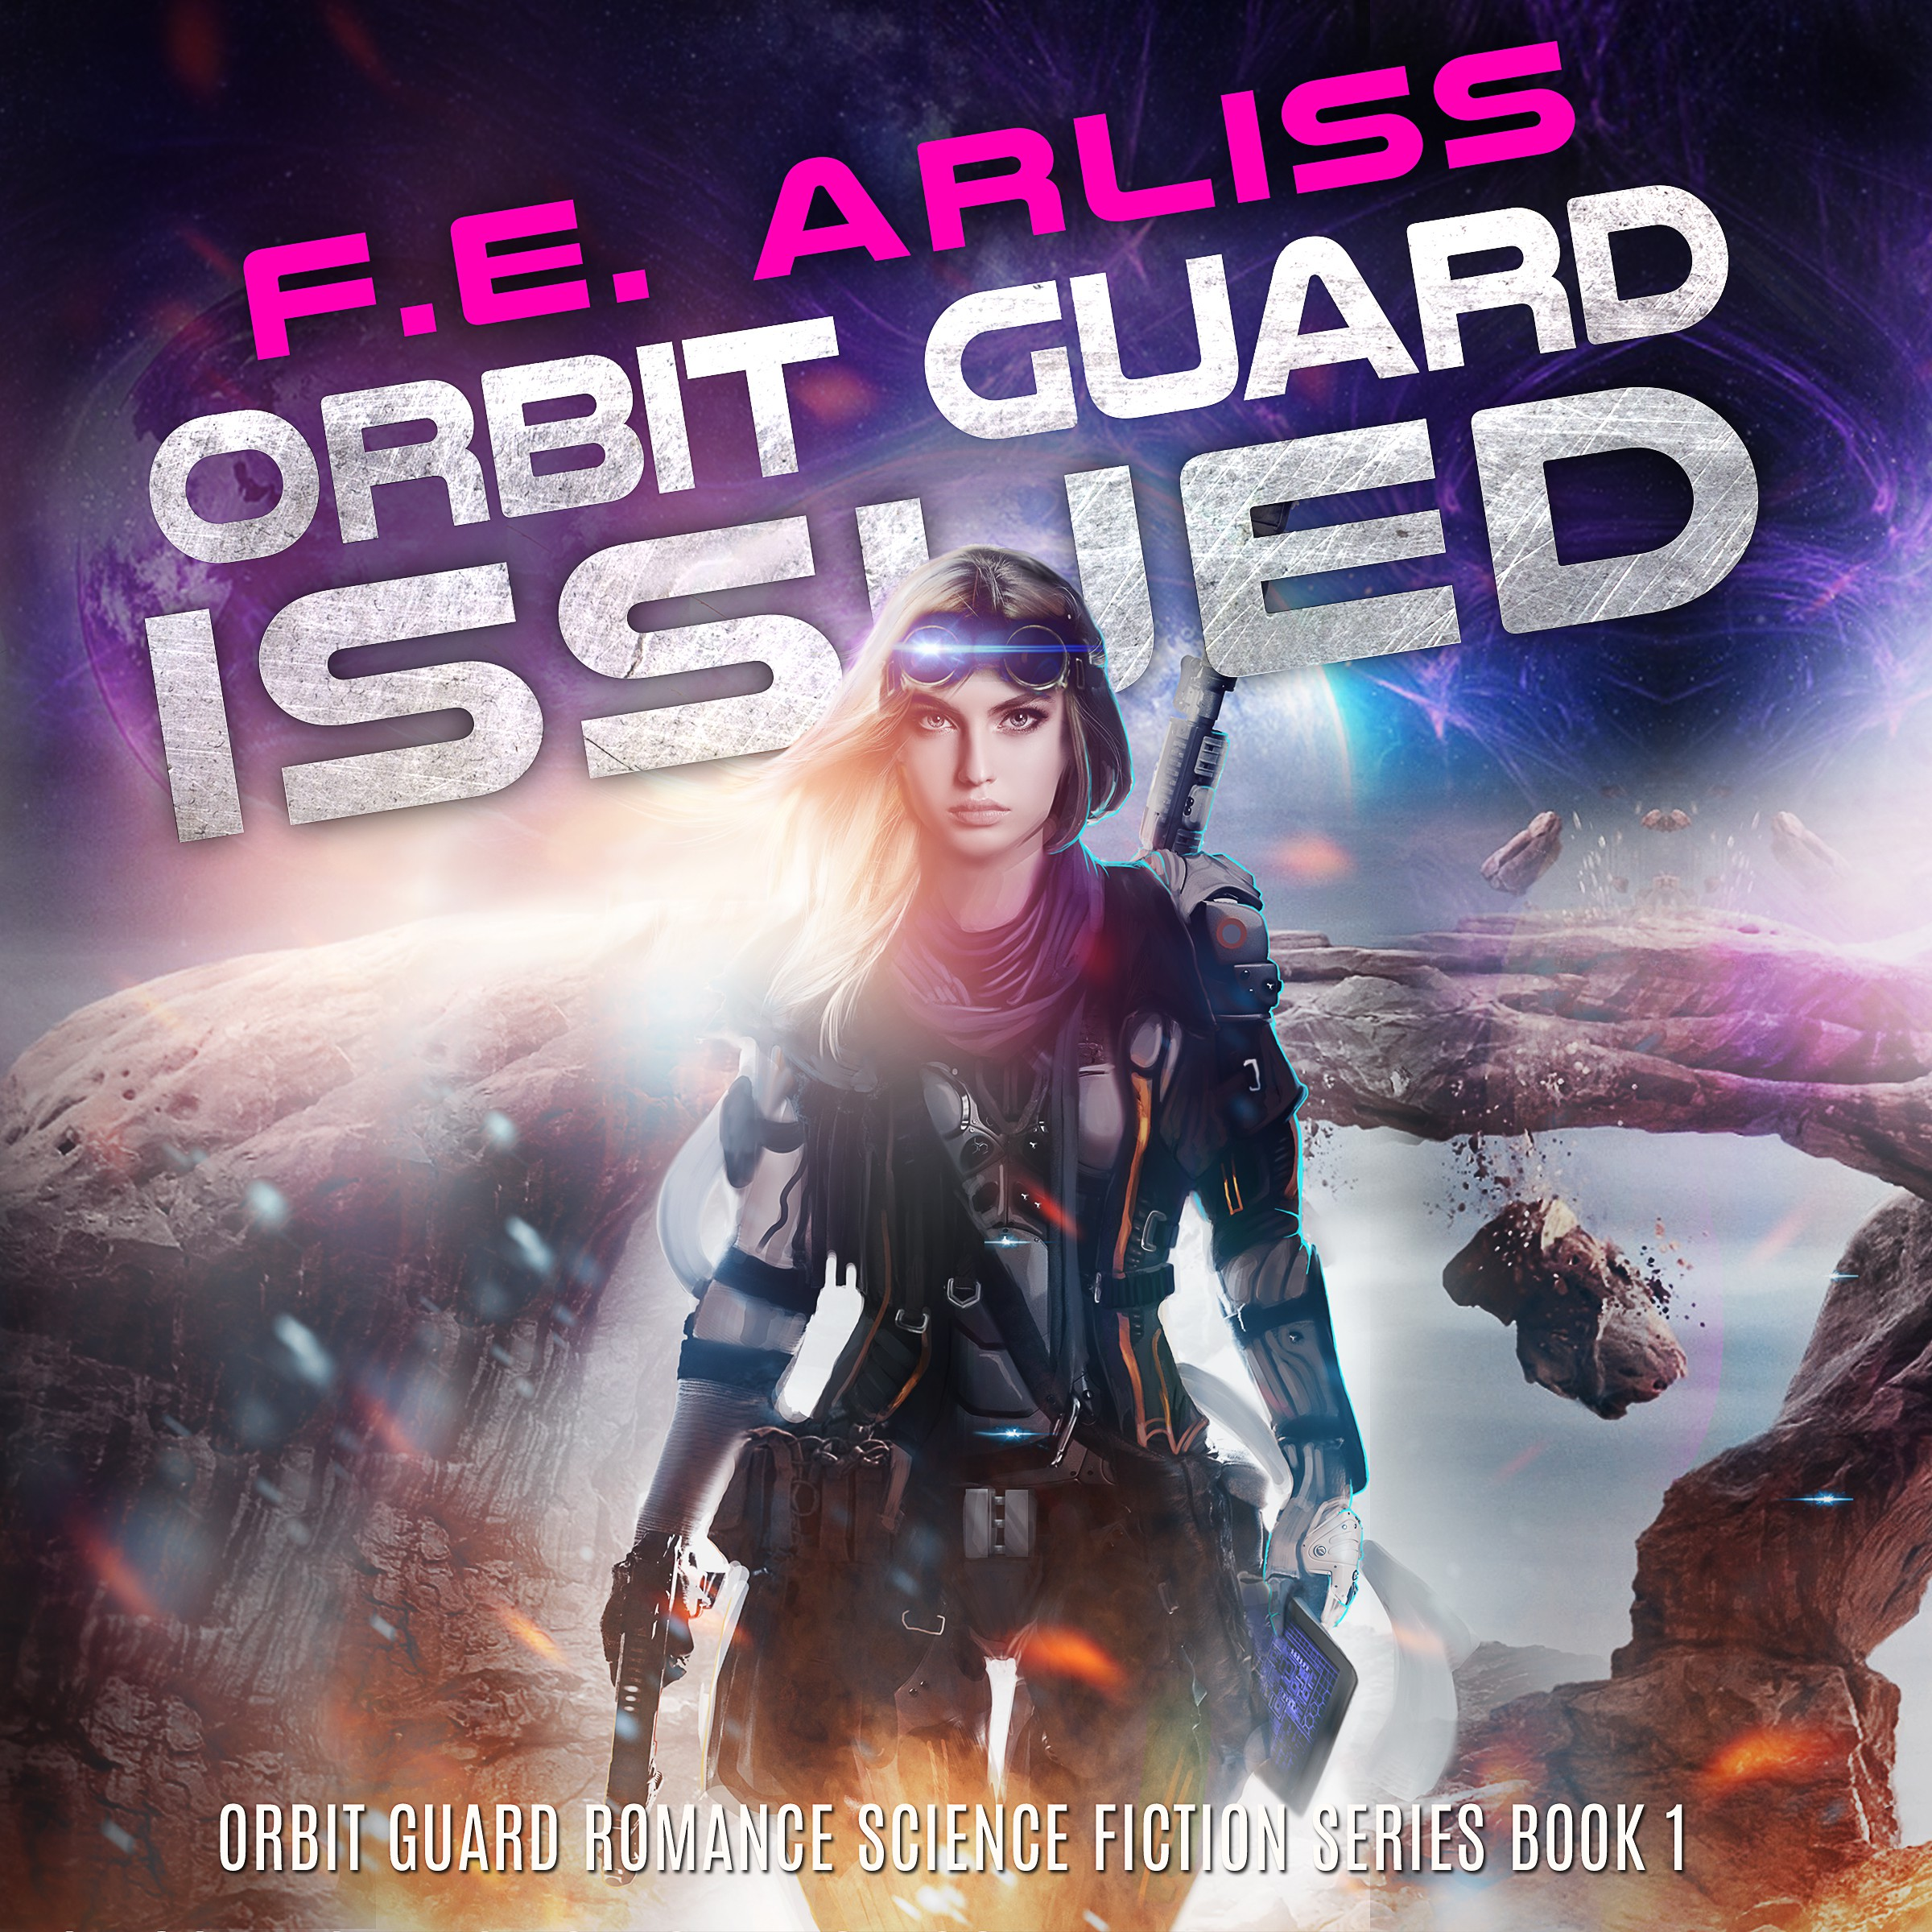 Orbit Guard Issued cover work for ACX